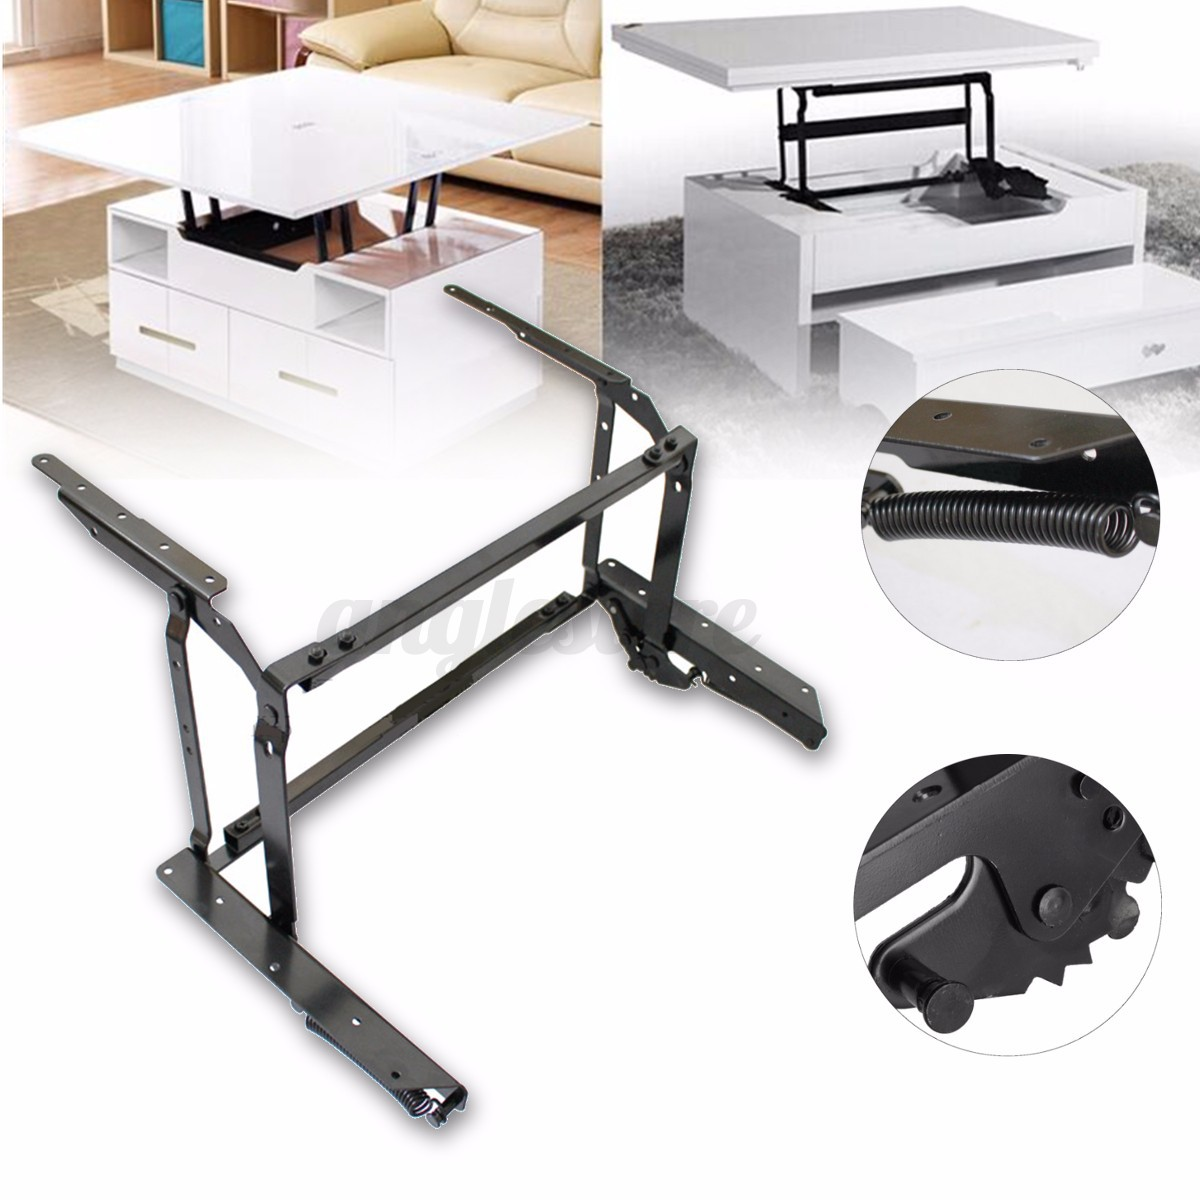 New Coffee Table Lift Top Hardware Fitting Furniture Mechanism Spring Hinges Ebay